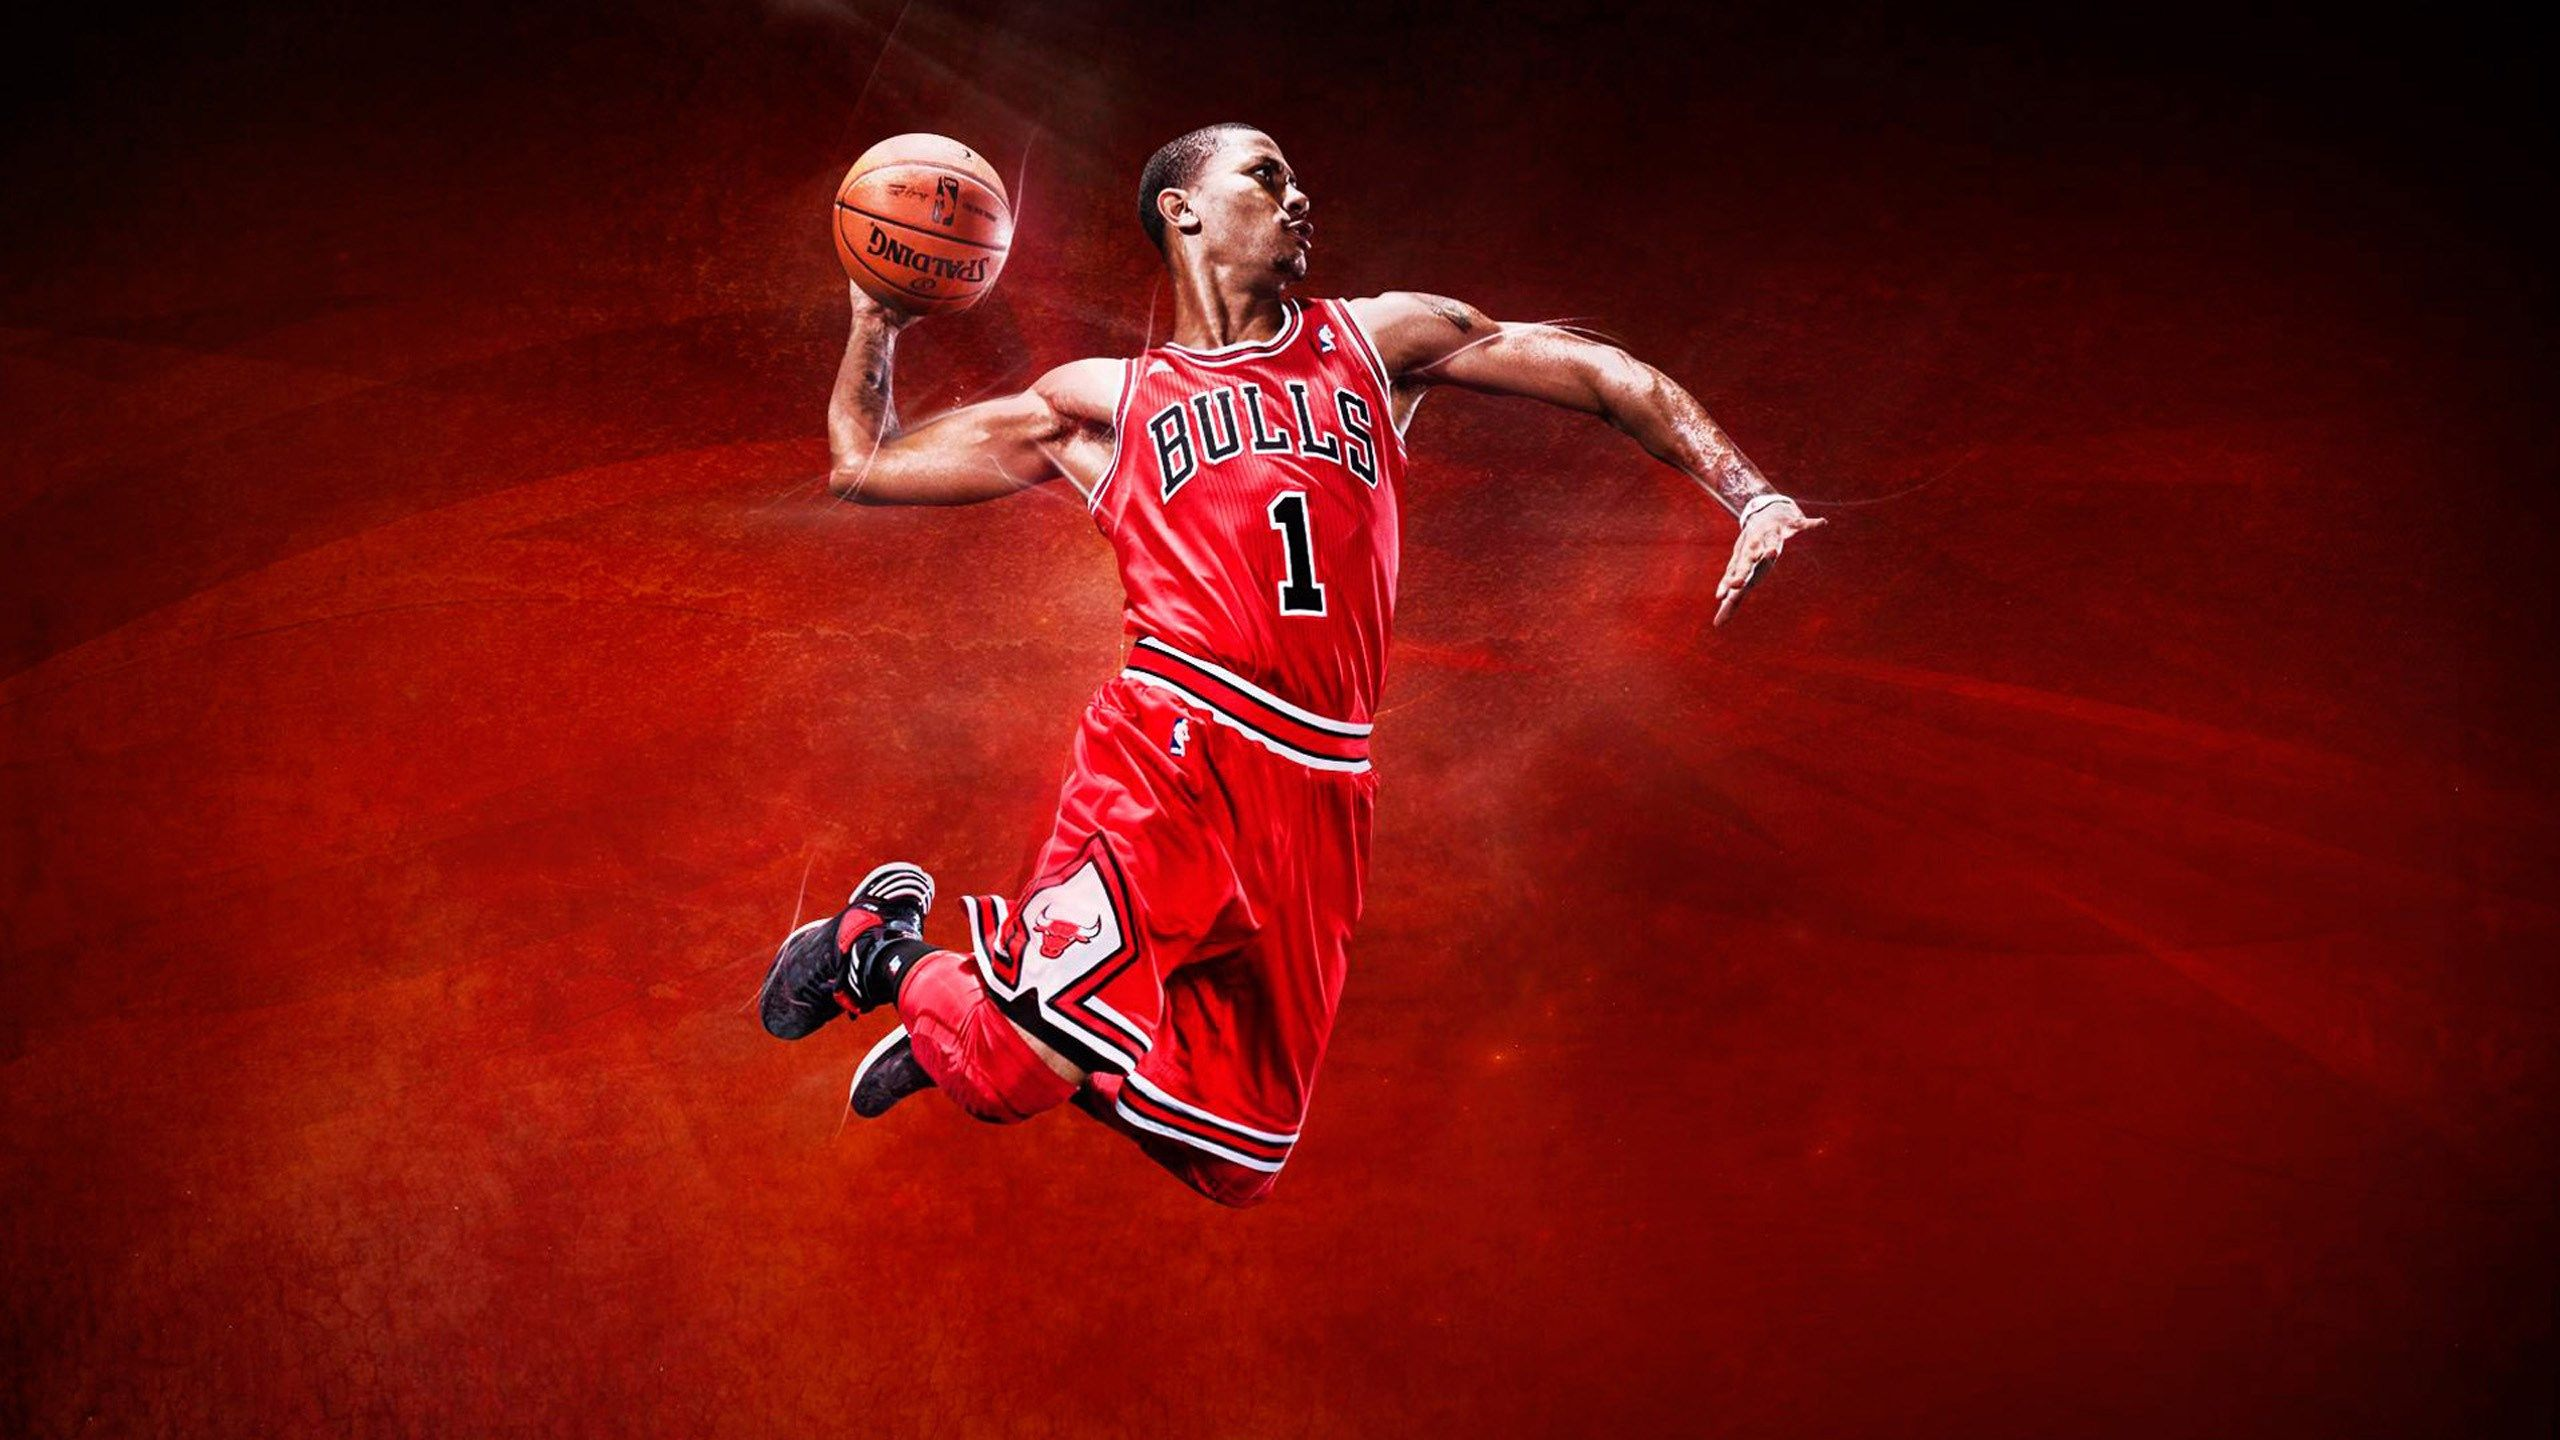 awesome basketball wallpapers backgrounds 2560x1440 Derrick rose 2560x1440